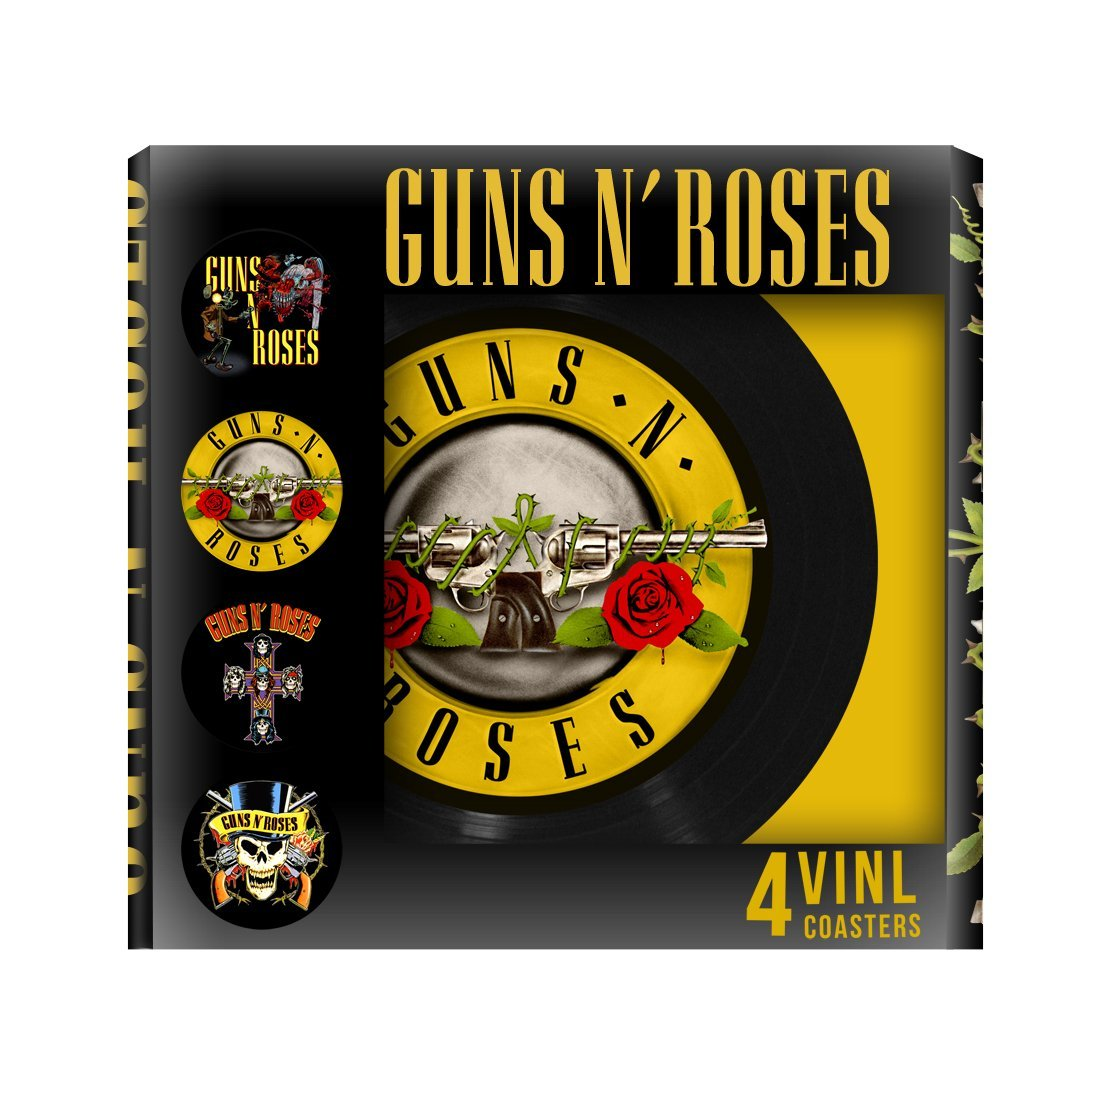 Guns N Roses 4pc Vinyl Coaster Set